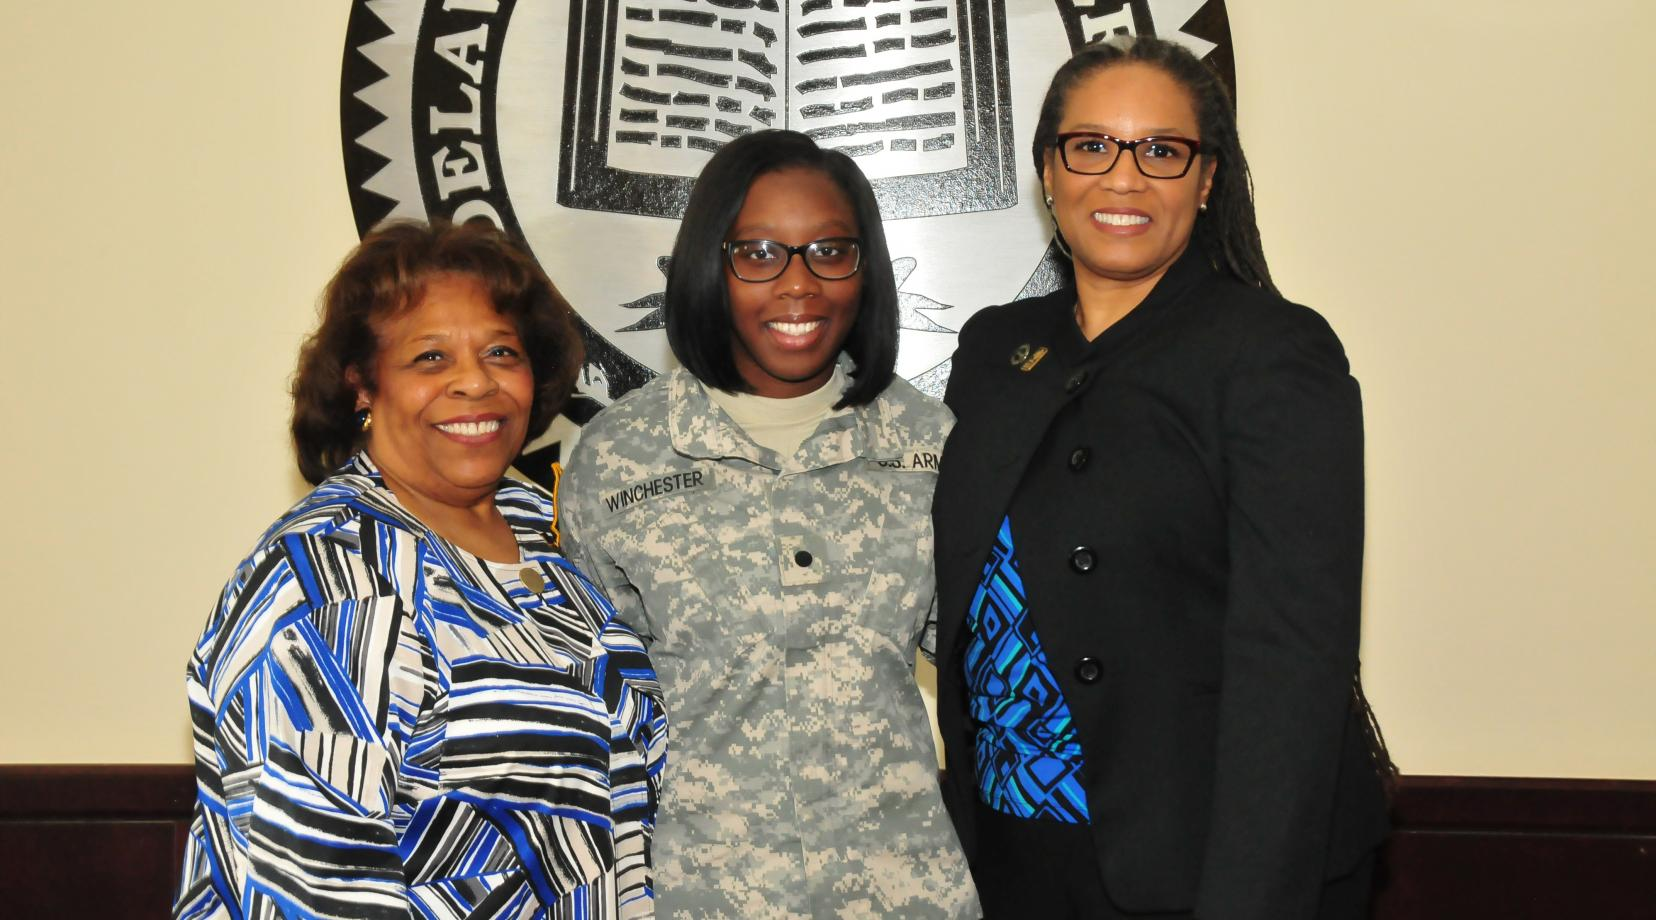 Alisa Winchester (center), a junior English major, stands with DSU Acting President Wilma Mishoe (l) and Dr. Adenike Davidson, professor of English. Just before the photo, Dr. Mishoe informed Ms. Winchester, also a ROTC cadet, that she has been awarded the prestigious Harry W. Truman Scholarship.